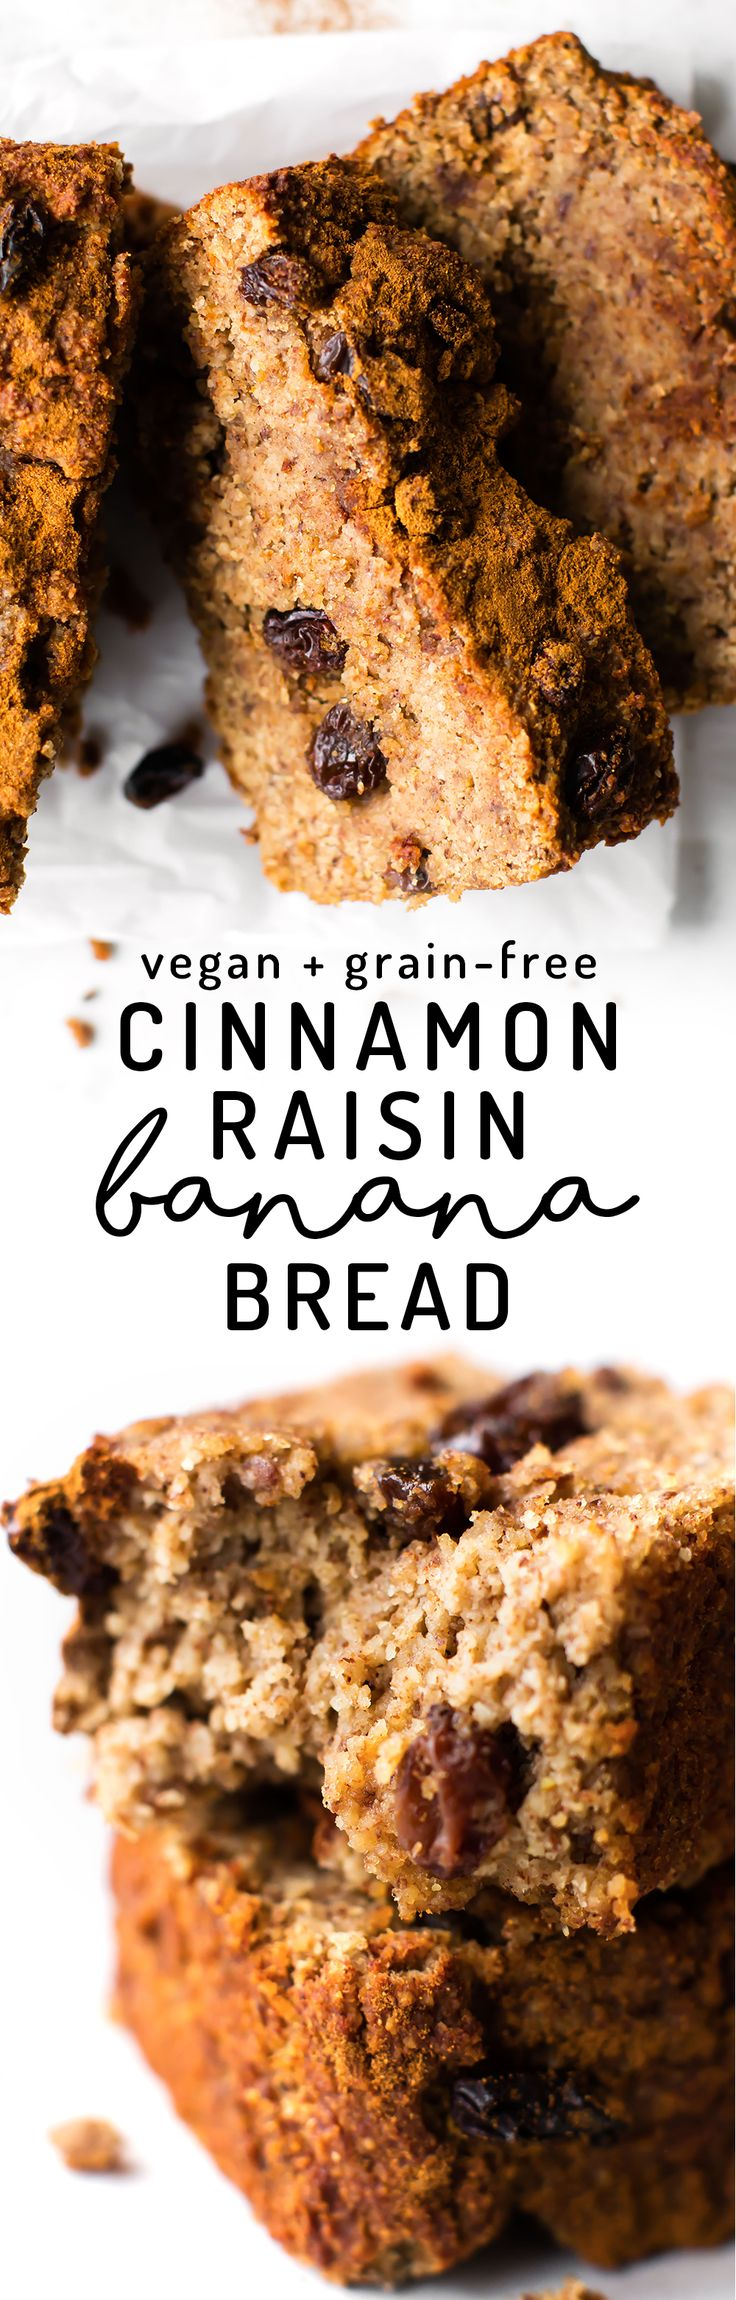 Soft naturally sweet banana bread spiced up with cinnamon and speckled with raisins for a healthy and simple breakfast, snack, or dessert! Vegan, grain-free, refined sugar-free. via @Natalie | Feasting on Fruit